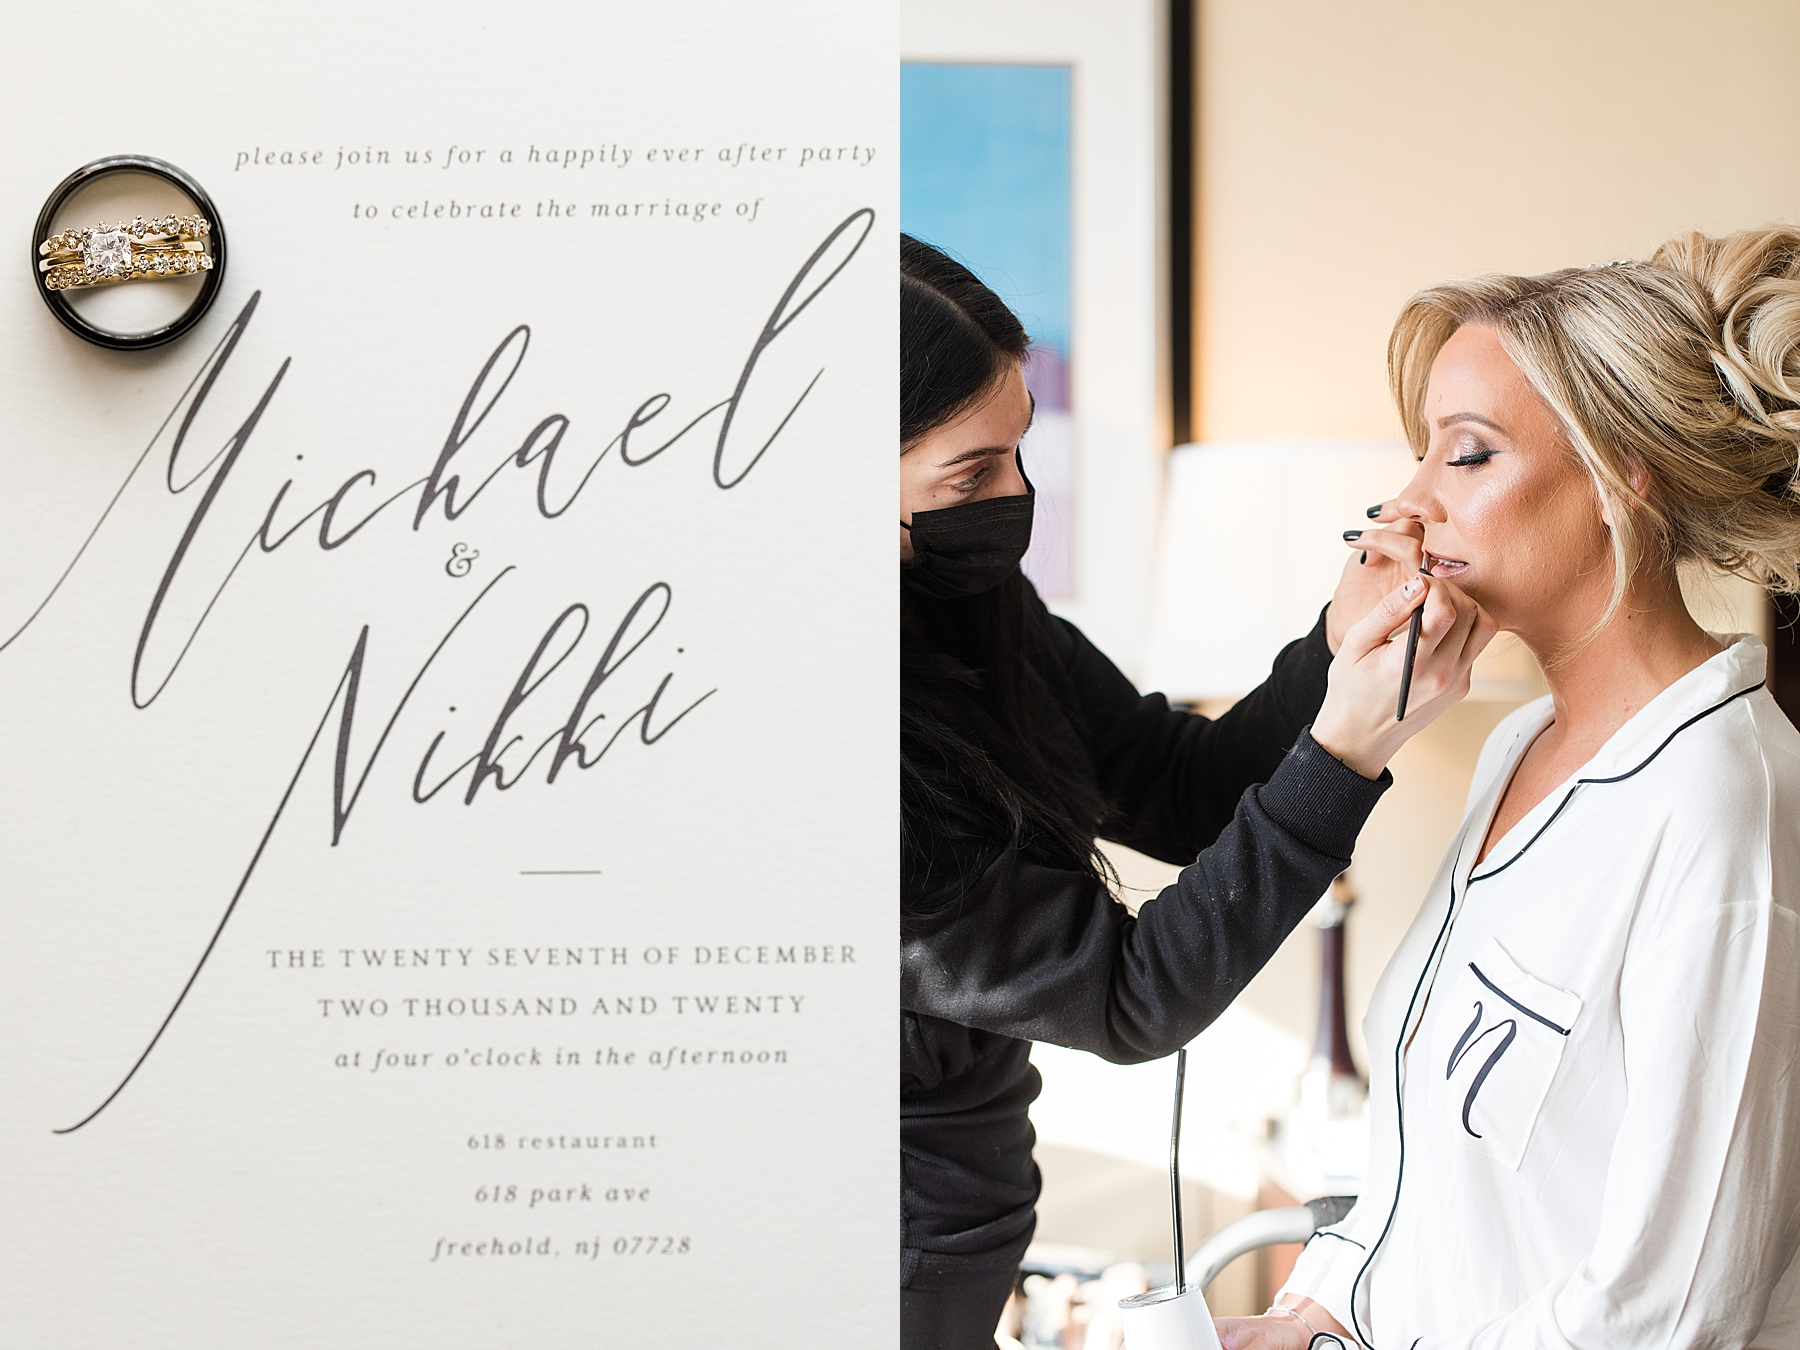 Nikki + Mike's Happily Ever After Party